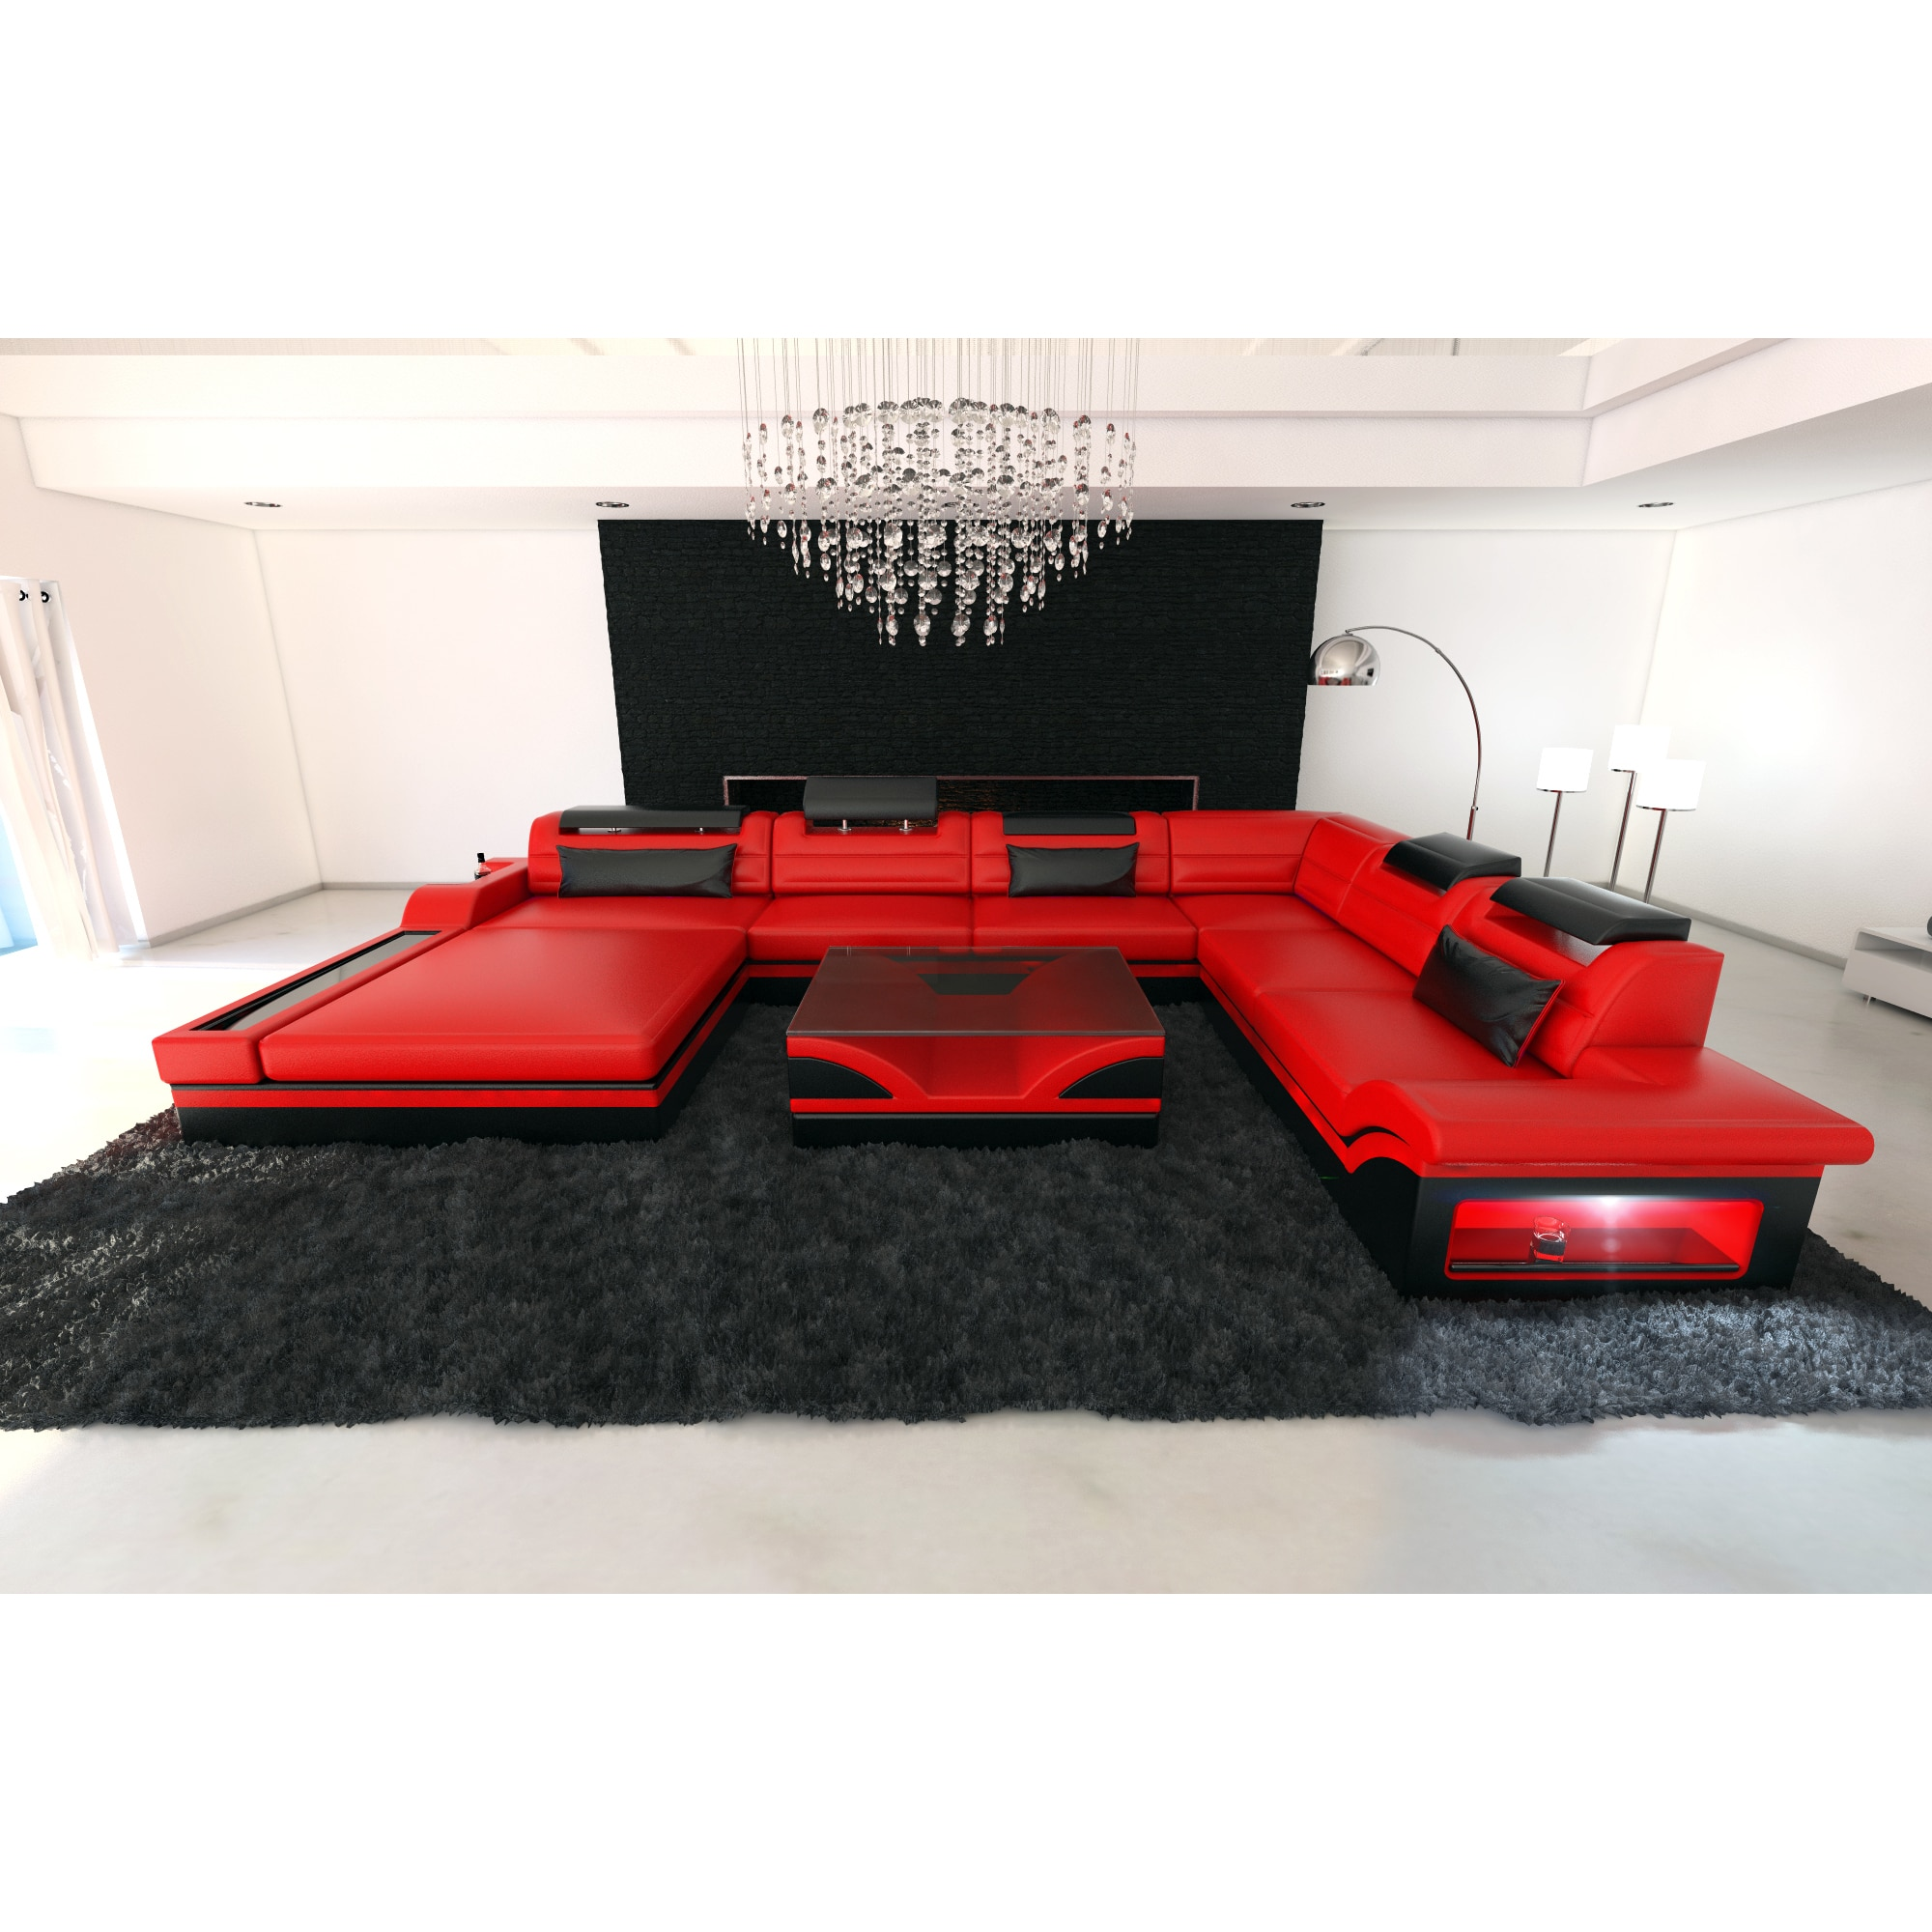 Sofa Led Sofadreams Design Red Leather Sectional Sofa Orlando Xxl With Led